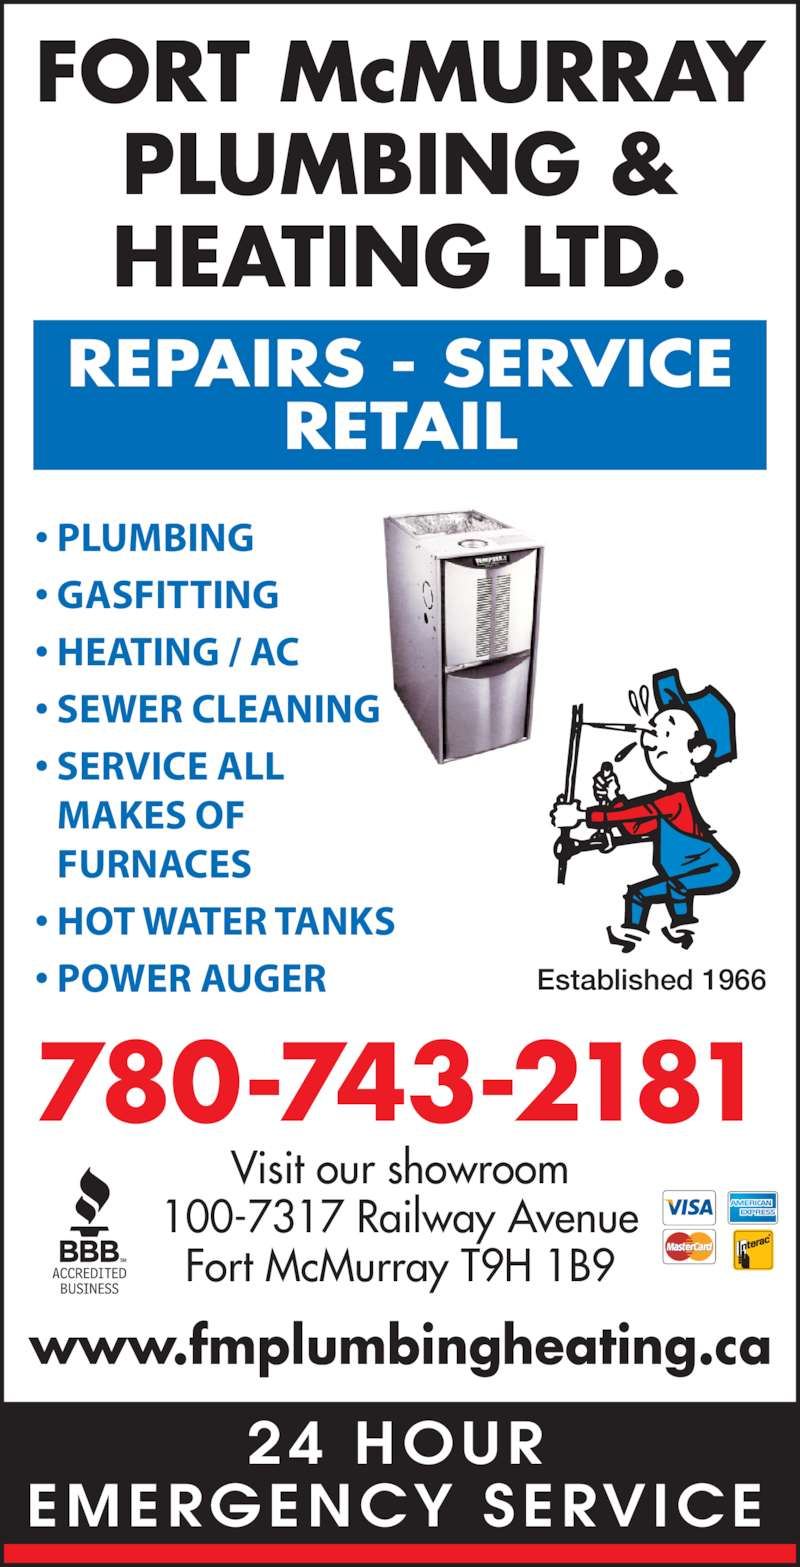 Fort McMurray Plumbing & Heating Ltd (780-743-2181) - Display Ad - 24 HOUR EMERGENCY SERVICE FORT McMURRAY PLUMBING & HEATING LTD. REPAIRS - SERVICE RETAIL 780-743-2181 Visit our showroom 100-7317 Railway Avenue Fort McMurray T9H 1B9 • GASFITTING • HEATING / AC  • SEWER CLEANING • SERVICE ALL MAKES OF FURNACES • HOT WATER TANKS • POWER AUGER www.fmplumbingheating.ca Established 1966 • PLUMBING